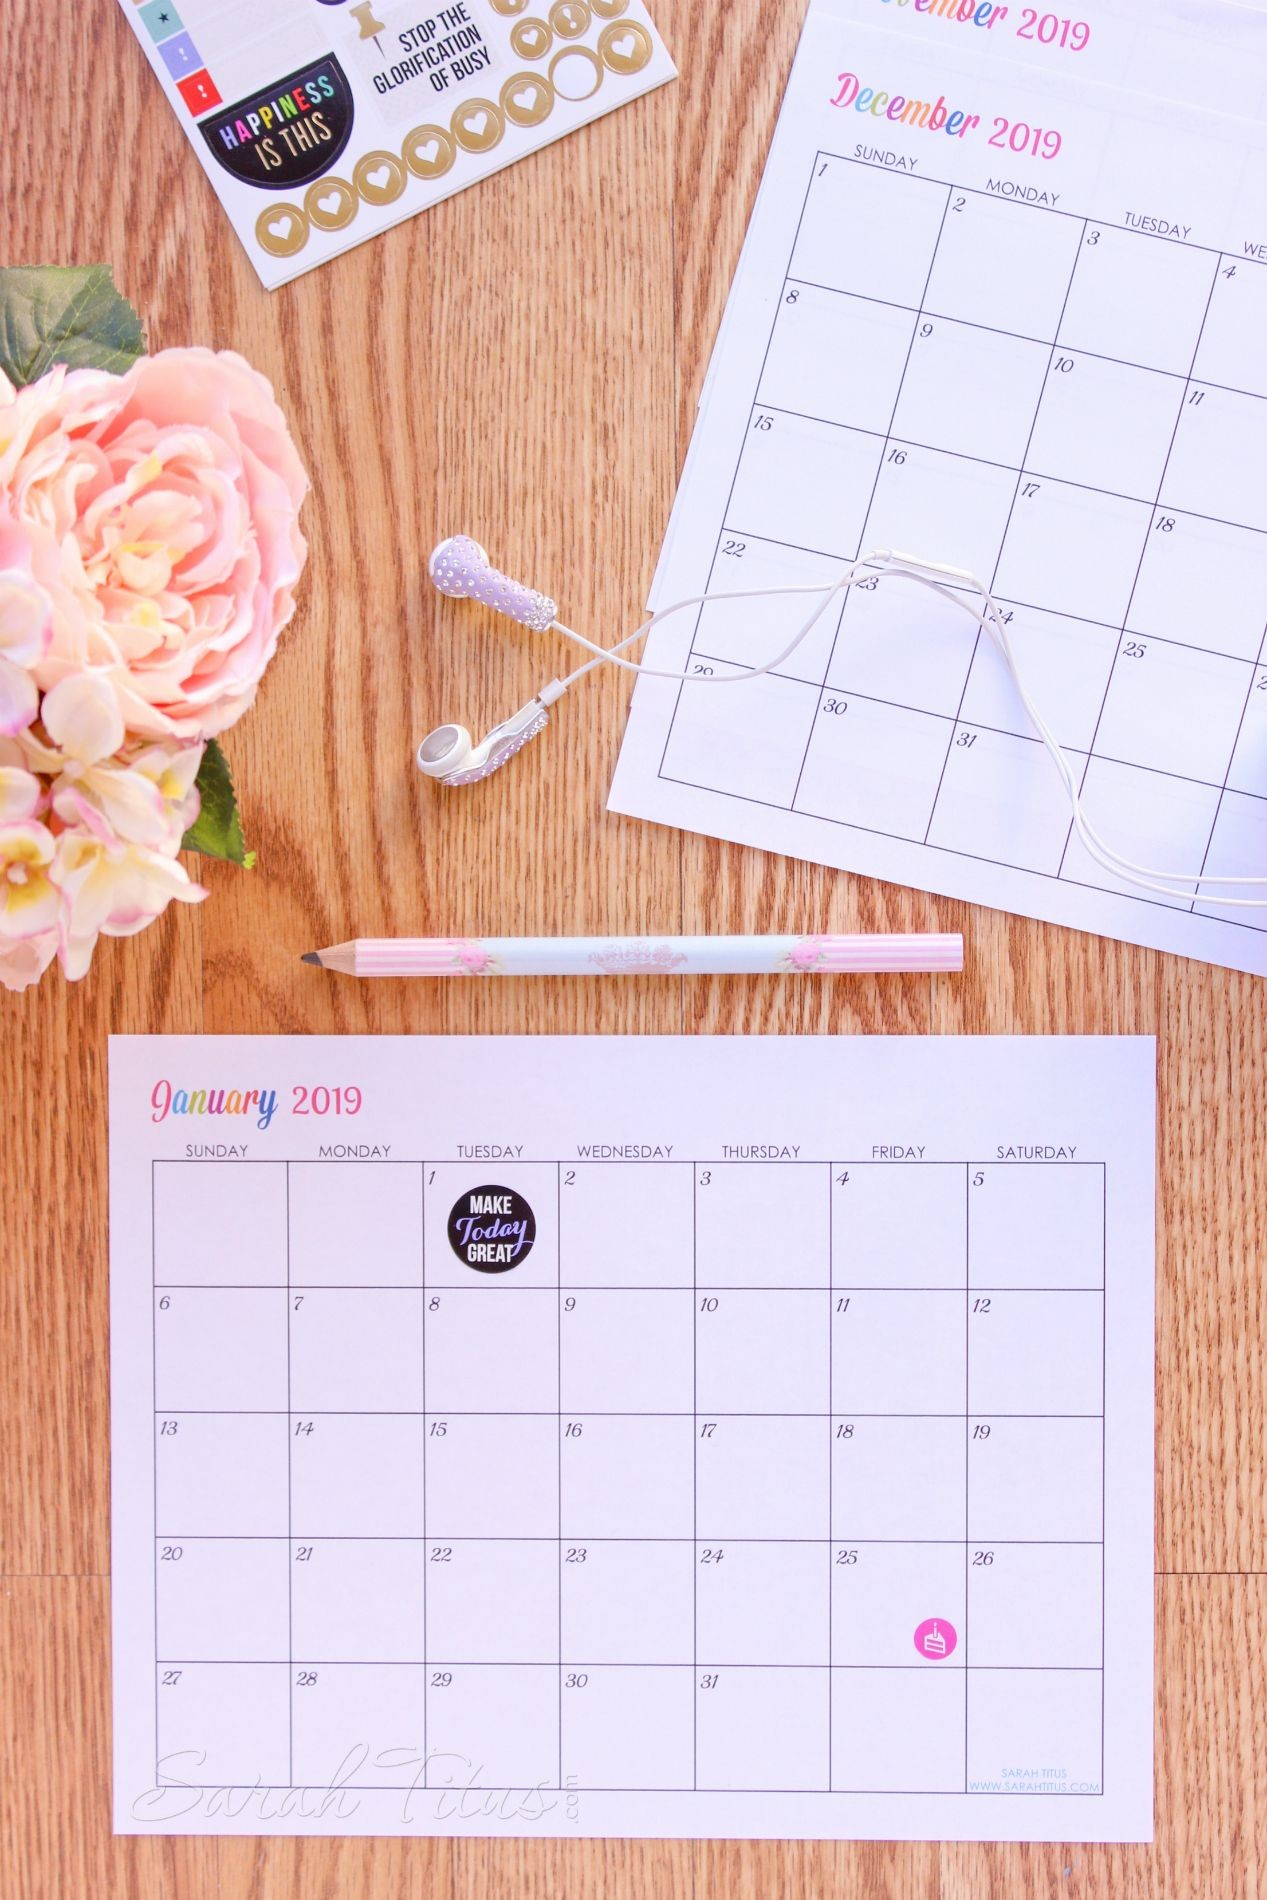 Free Printable 2019 Calendars pletely editable online Use them for menu planning homeschooling blogging or just to organize your life